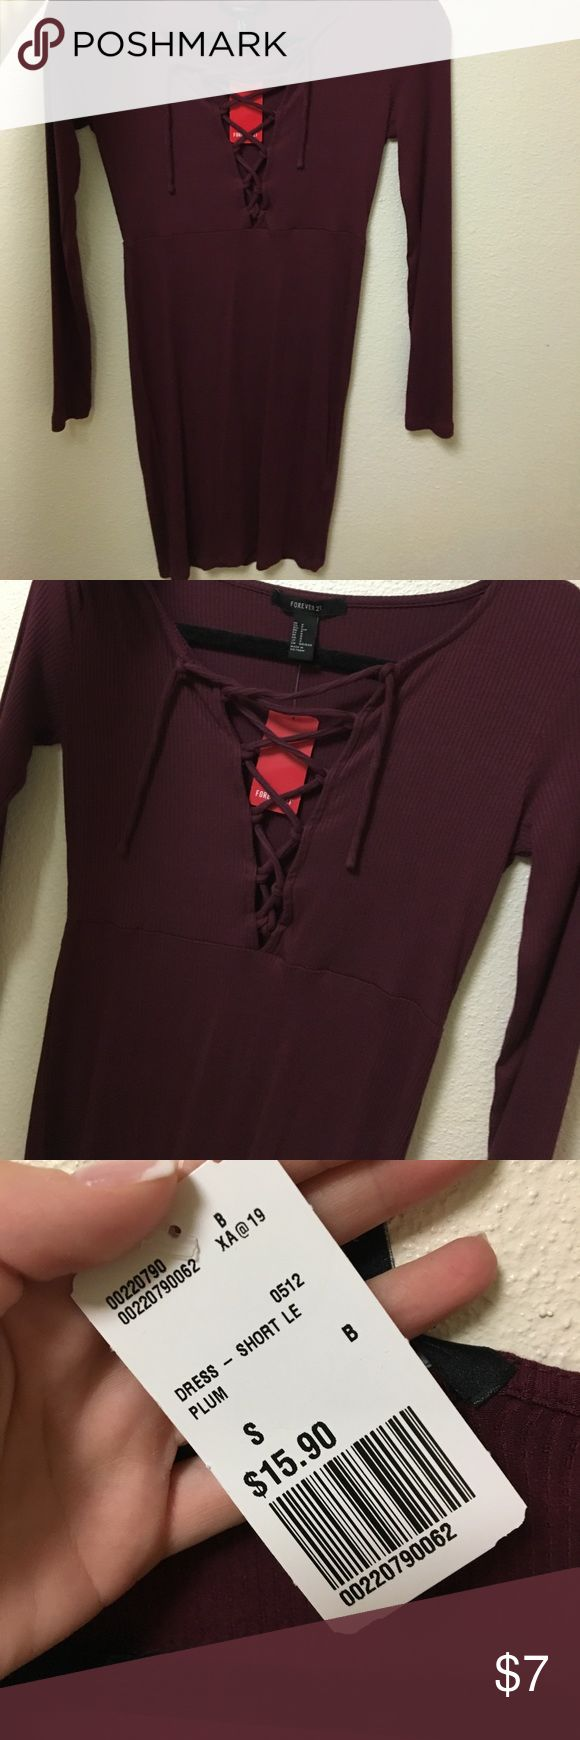 NWT Red lace up dress Never been worn cute wine colored dress! Forever 21 Dresses Long Sleeve